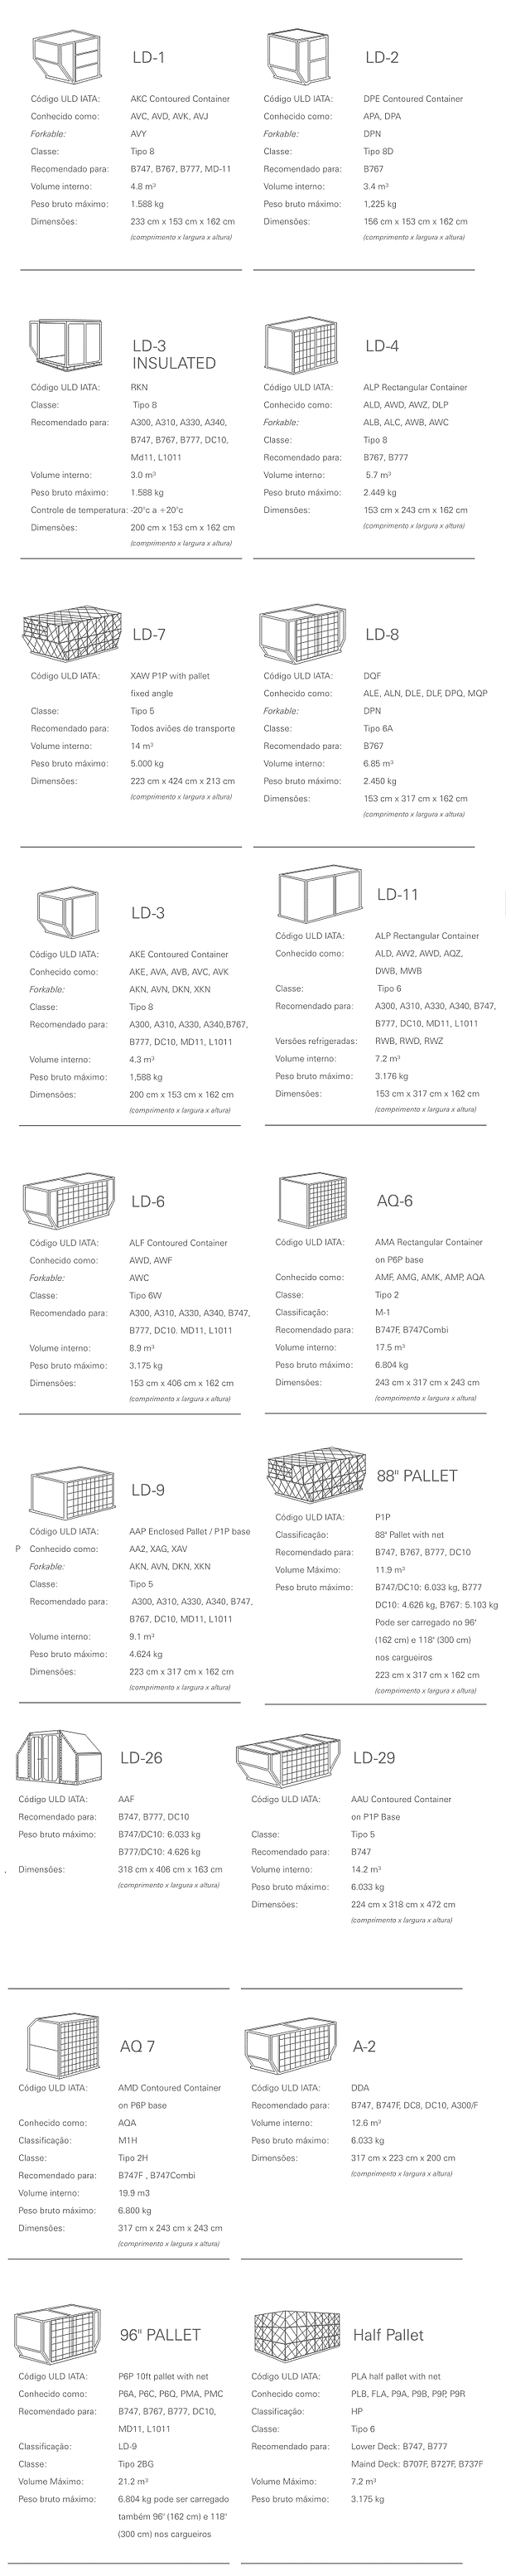 conteineres-pallets-aereosb-1.png